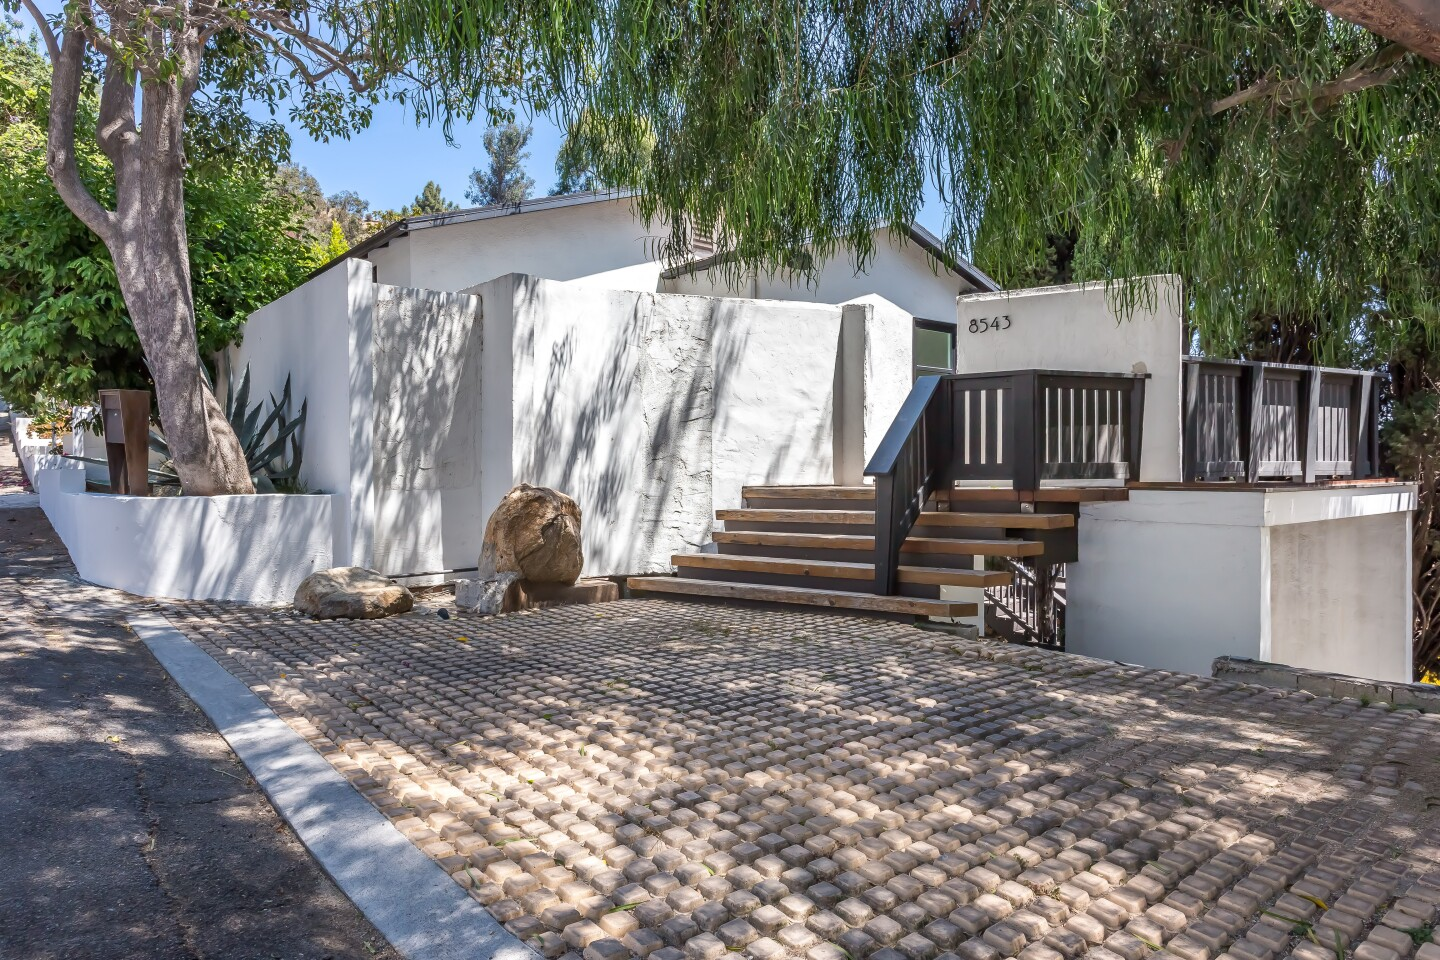 Eden Sassoon's home in Laurel Canyon | Hot Property